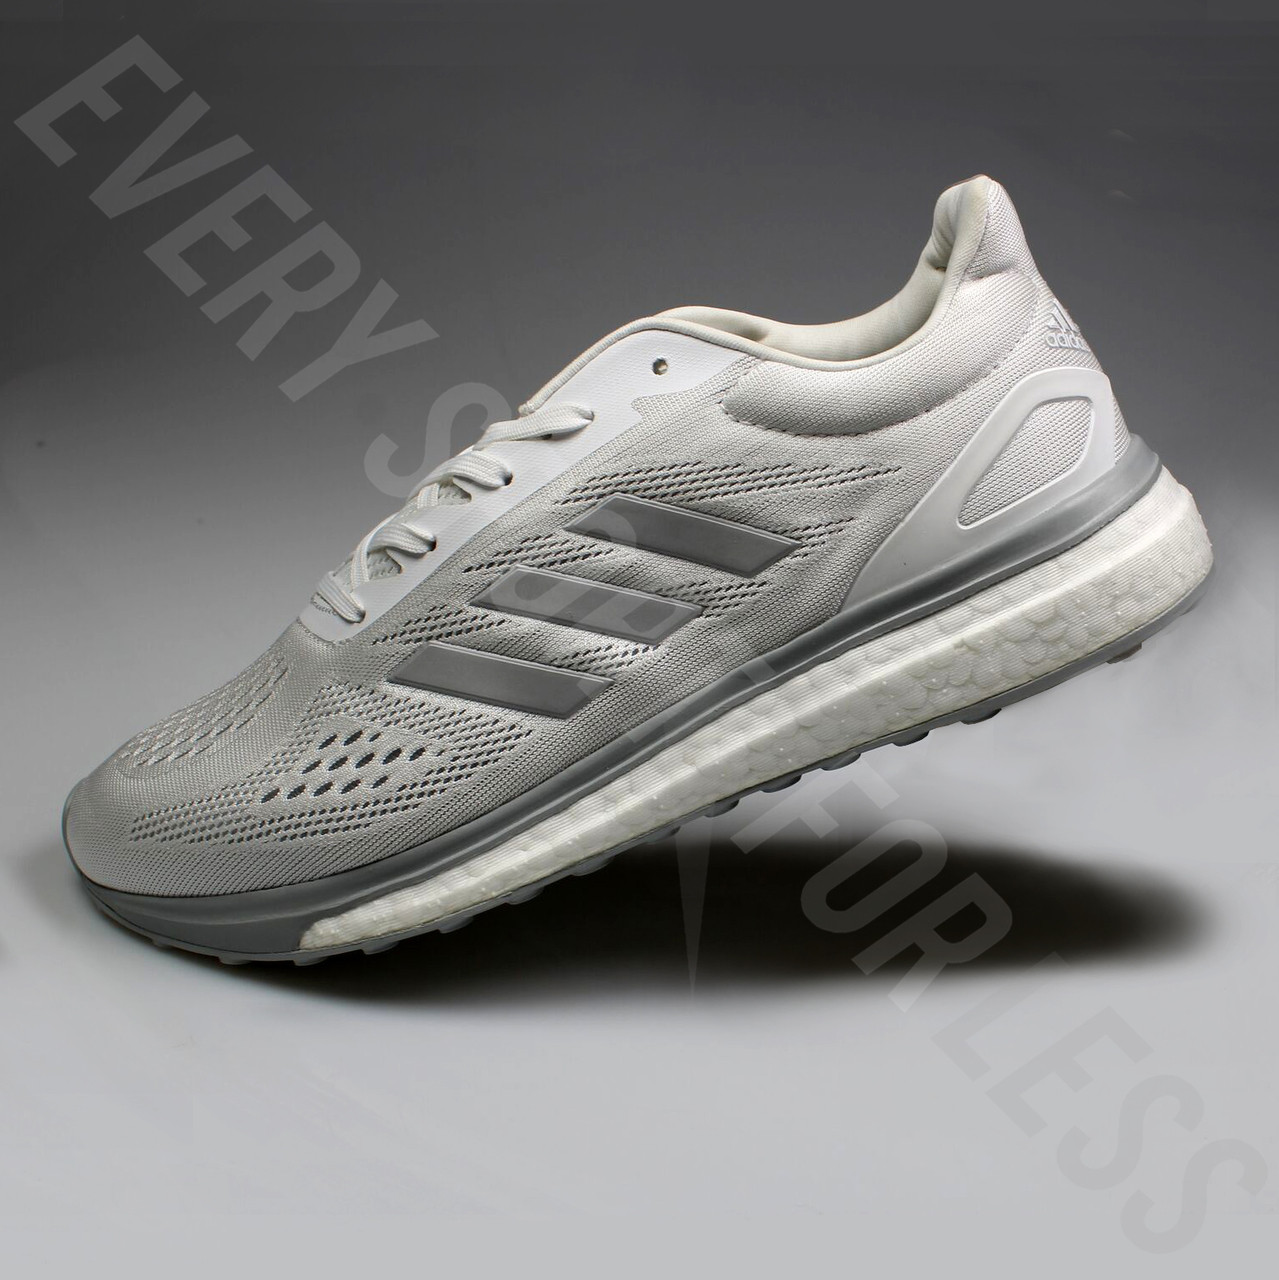 half off 277e7 c201b ireland adidas sonic drive w ba7784 womens running shoes white silver clear  4bd50 962f4